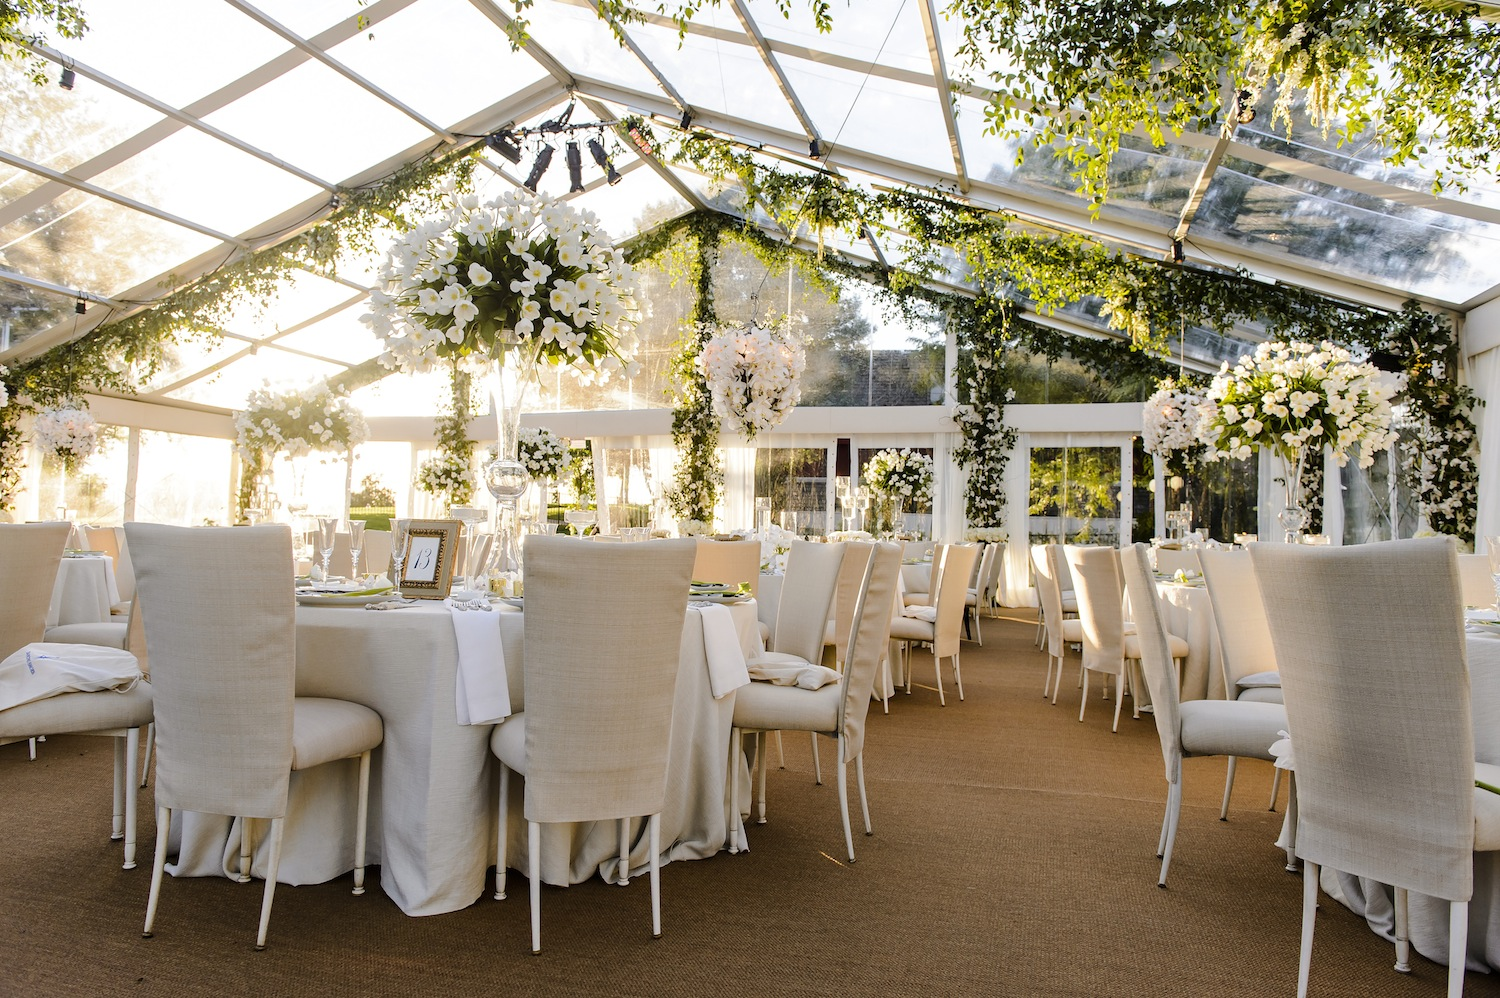 Clear top wedding tent over pool in Colorado & Wedding Ideas u0026 Trends: Clear-Top Wedding Tents - Inside Weddings